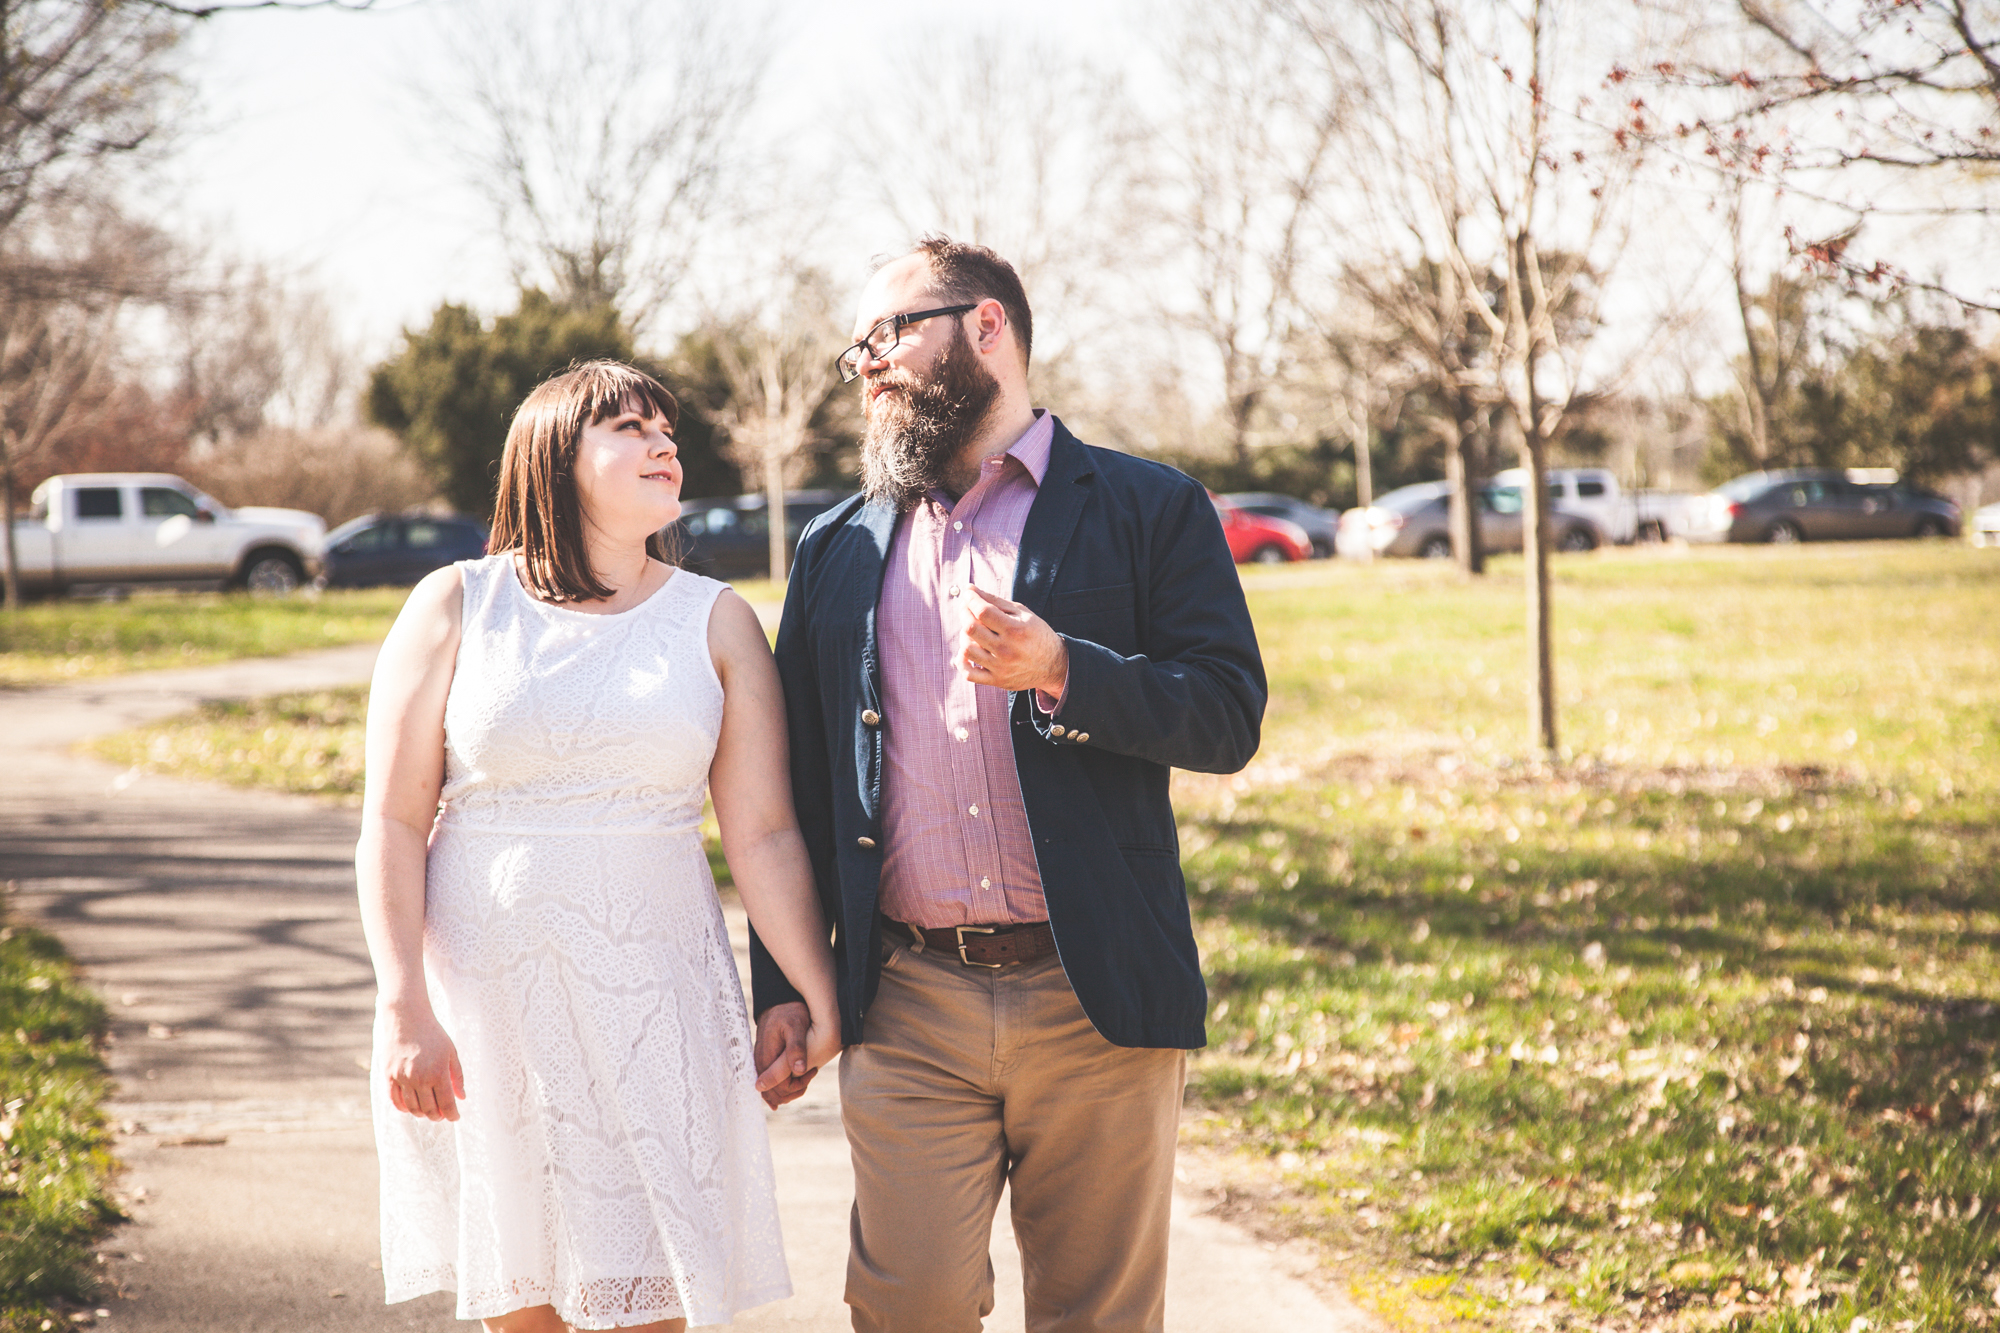 20180412-ShandiStephen-Engagement-blog-10.jpg